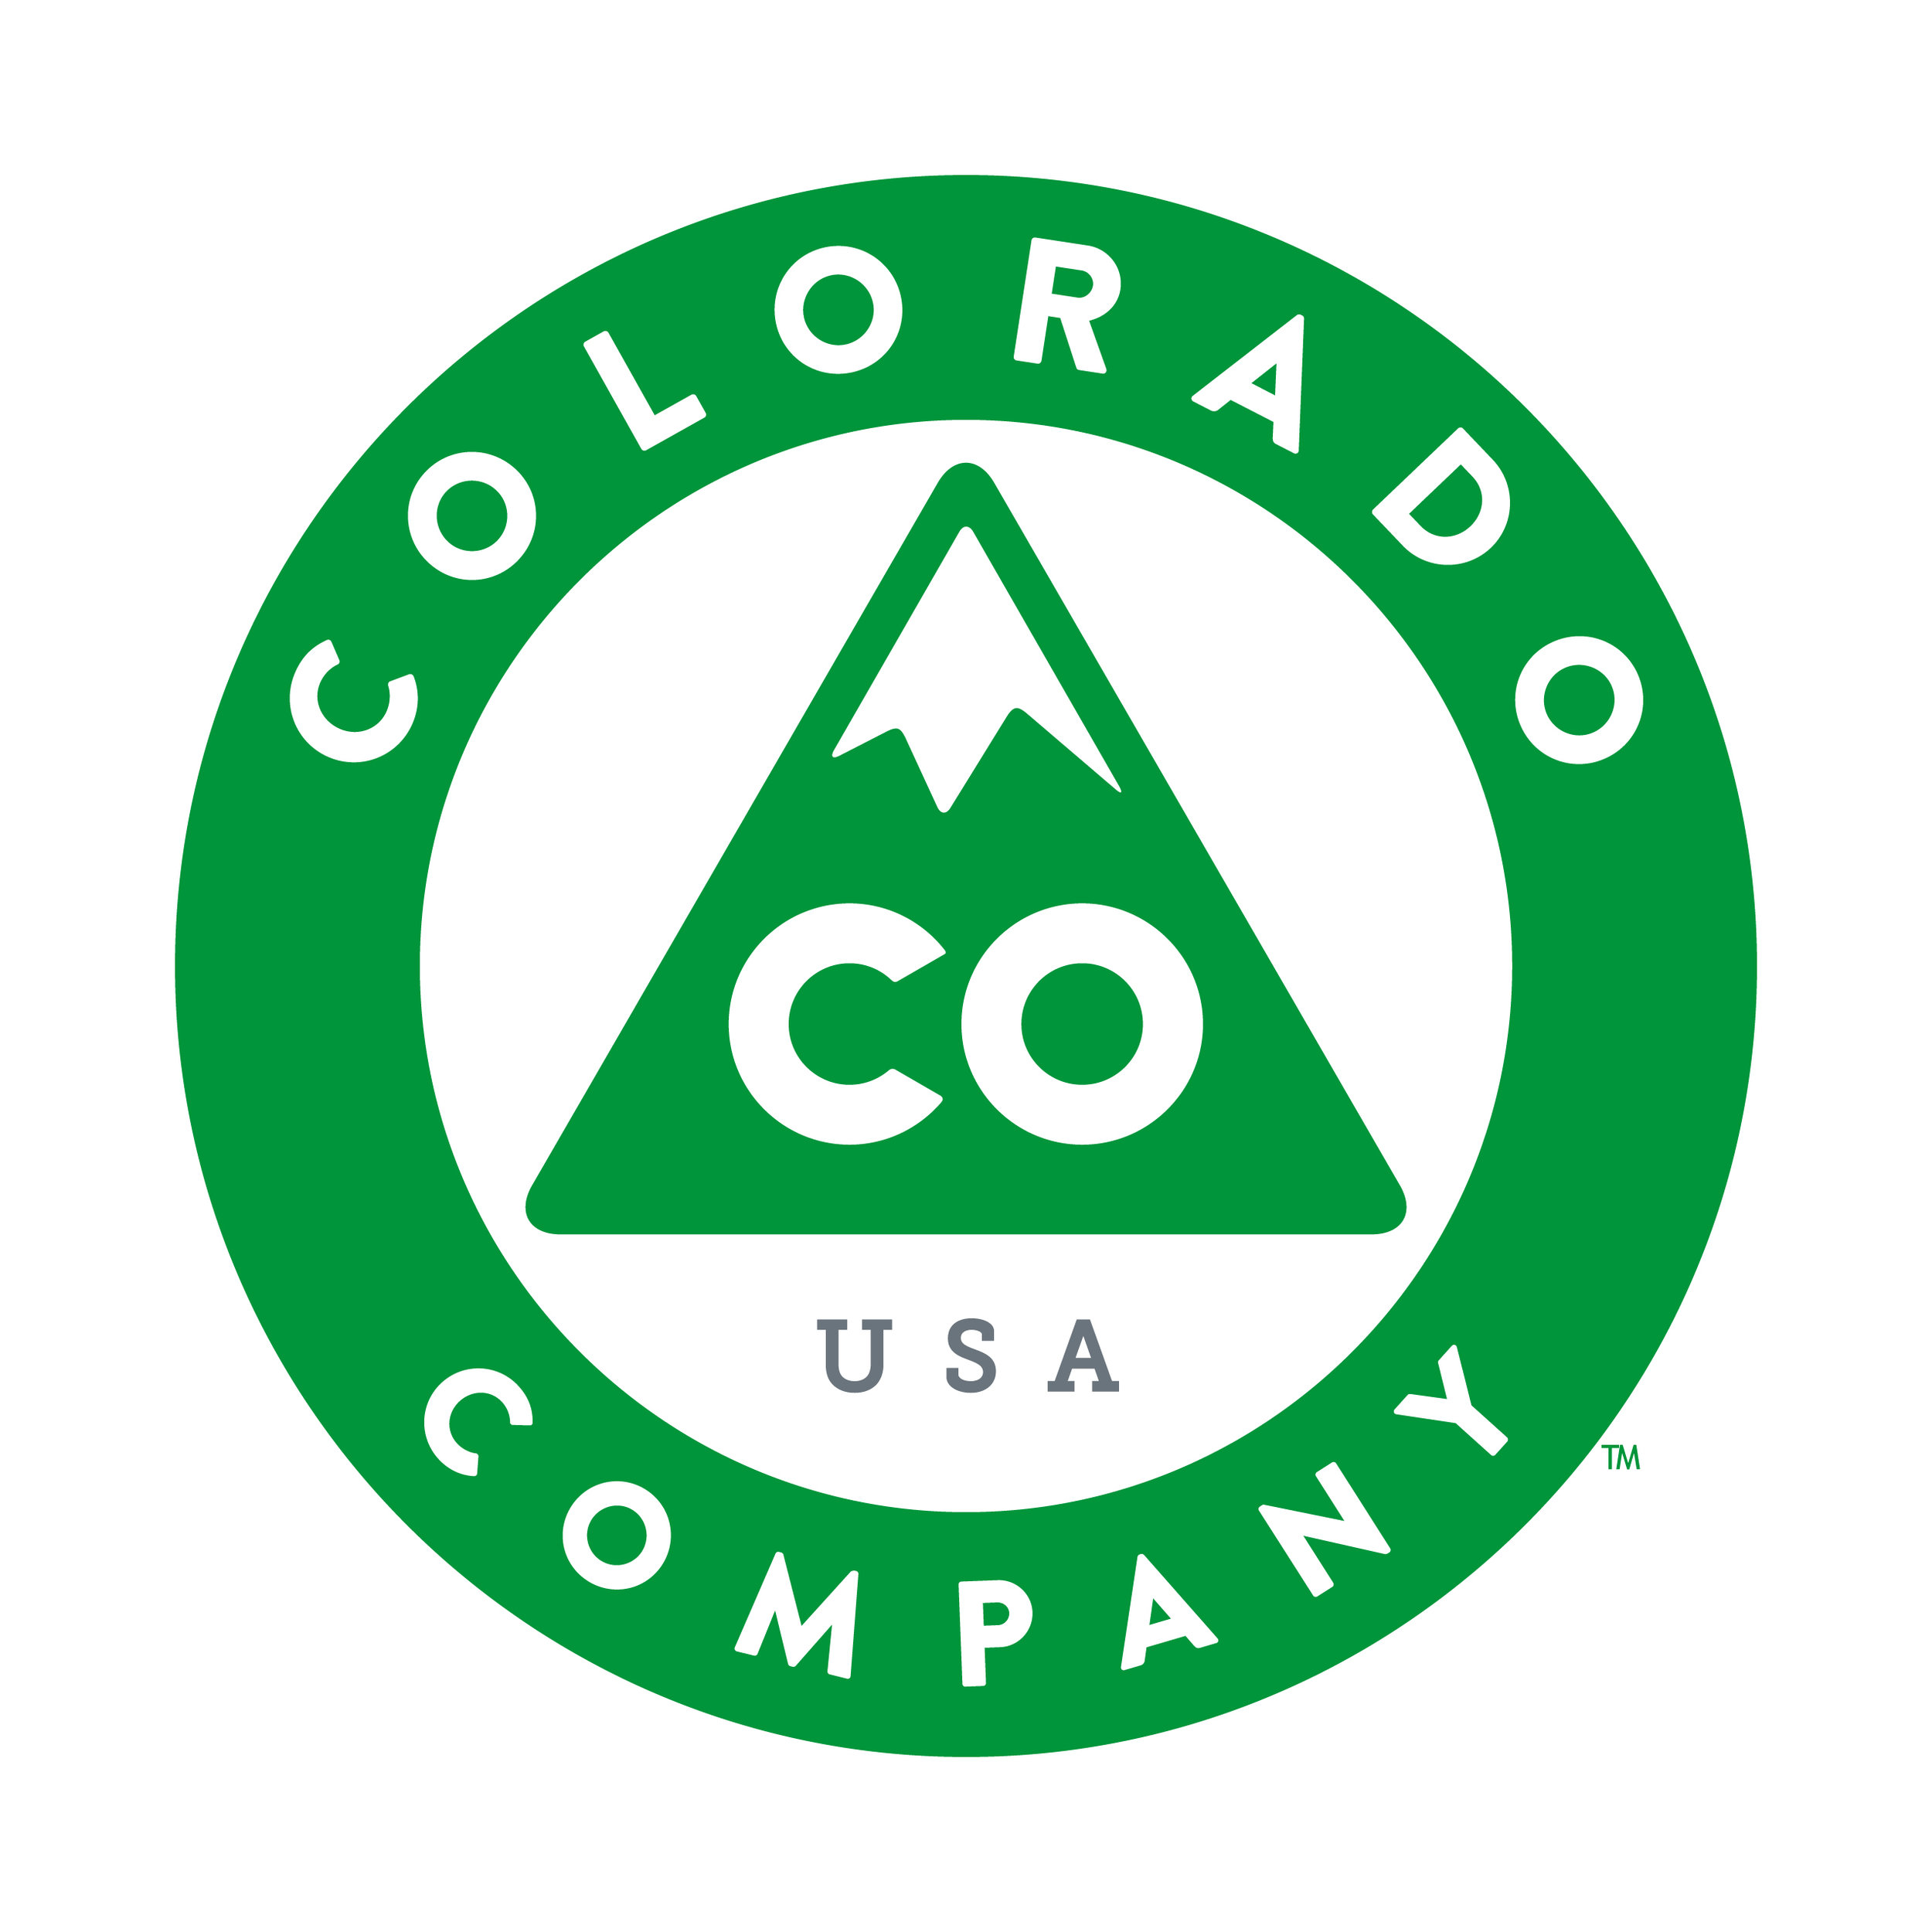 Colorado_Company.jpg